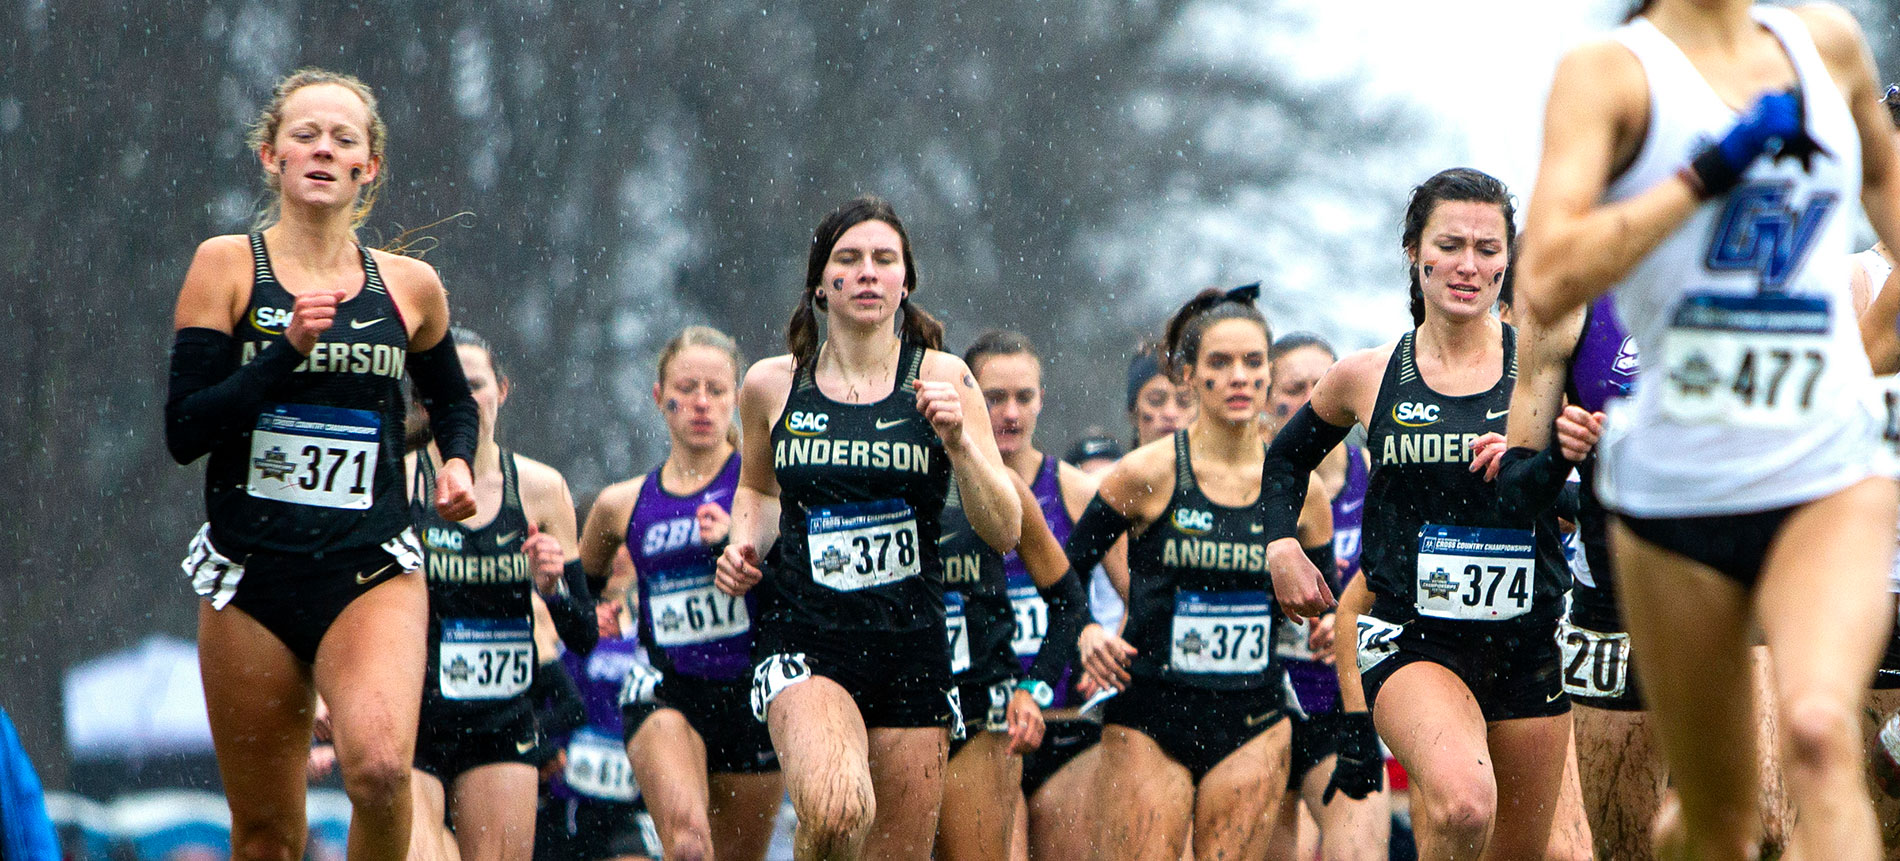 Women's Cross Country Finishes 33rd at NCAA National Championships